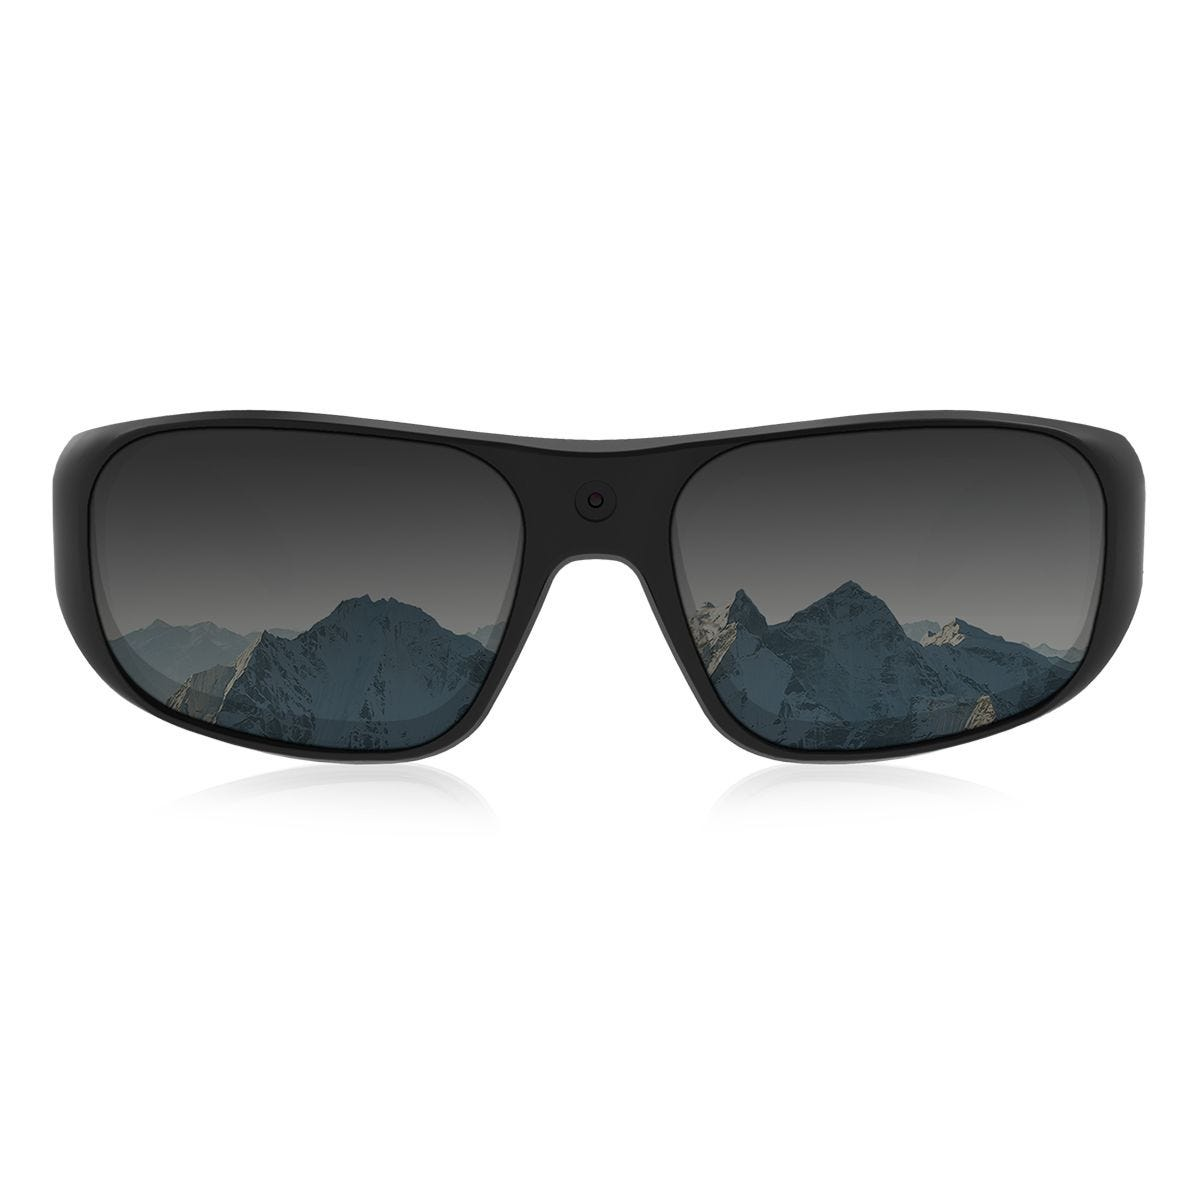 Bear Grylls Waterproof Video Eyewear